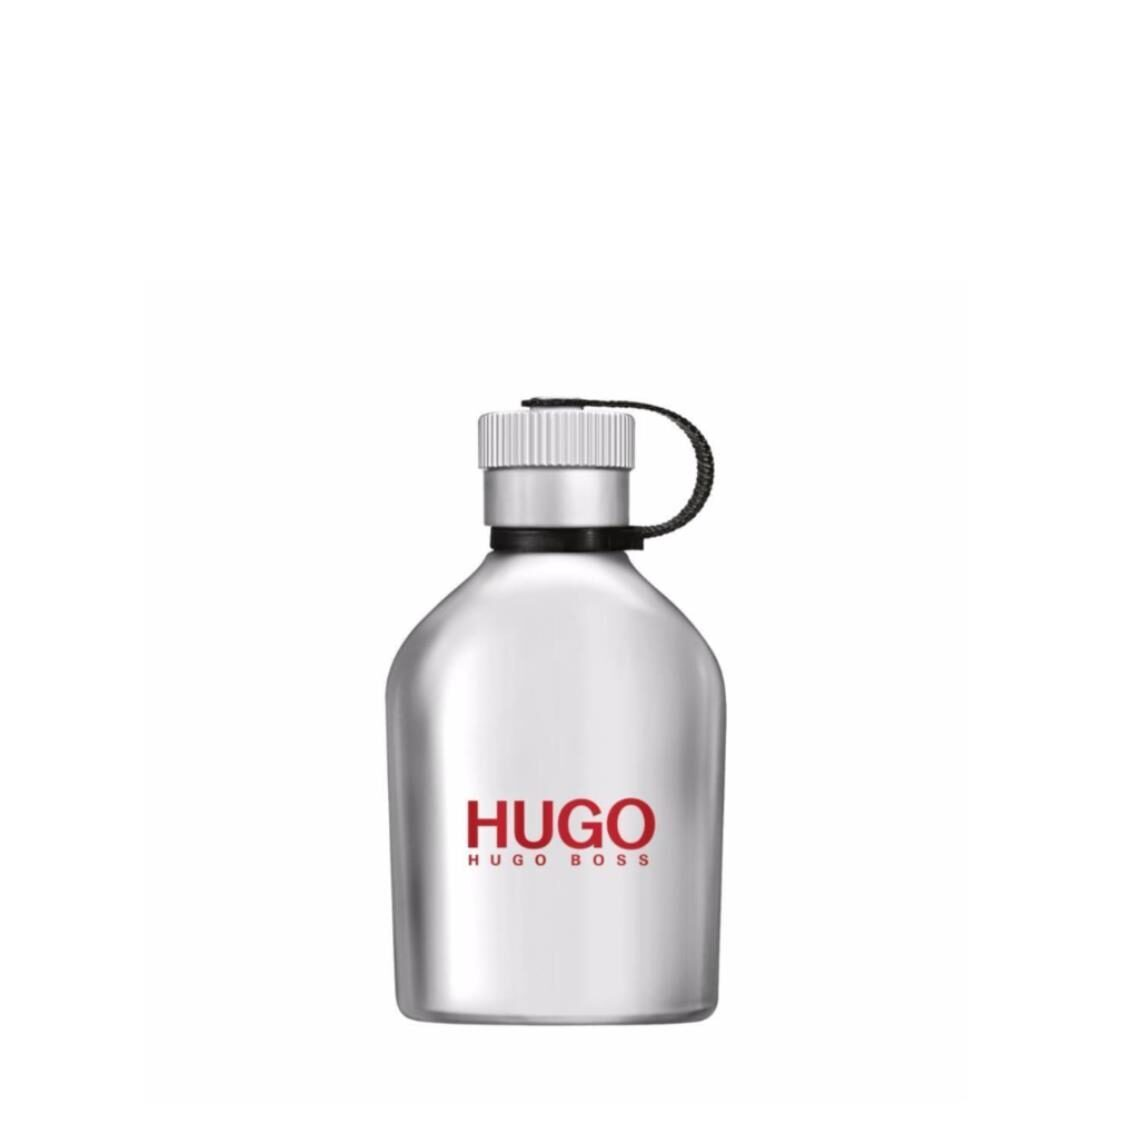 Hugo Iced Eau De Toilette Fragrance For Men Spray Bottle